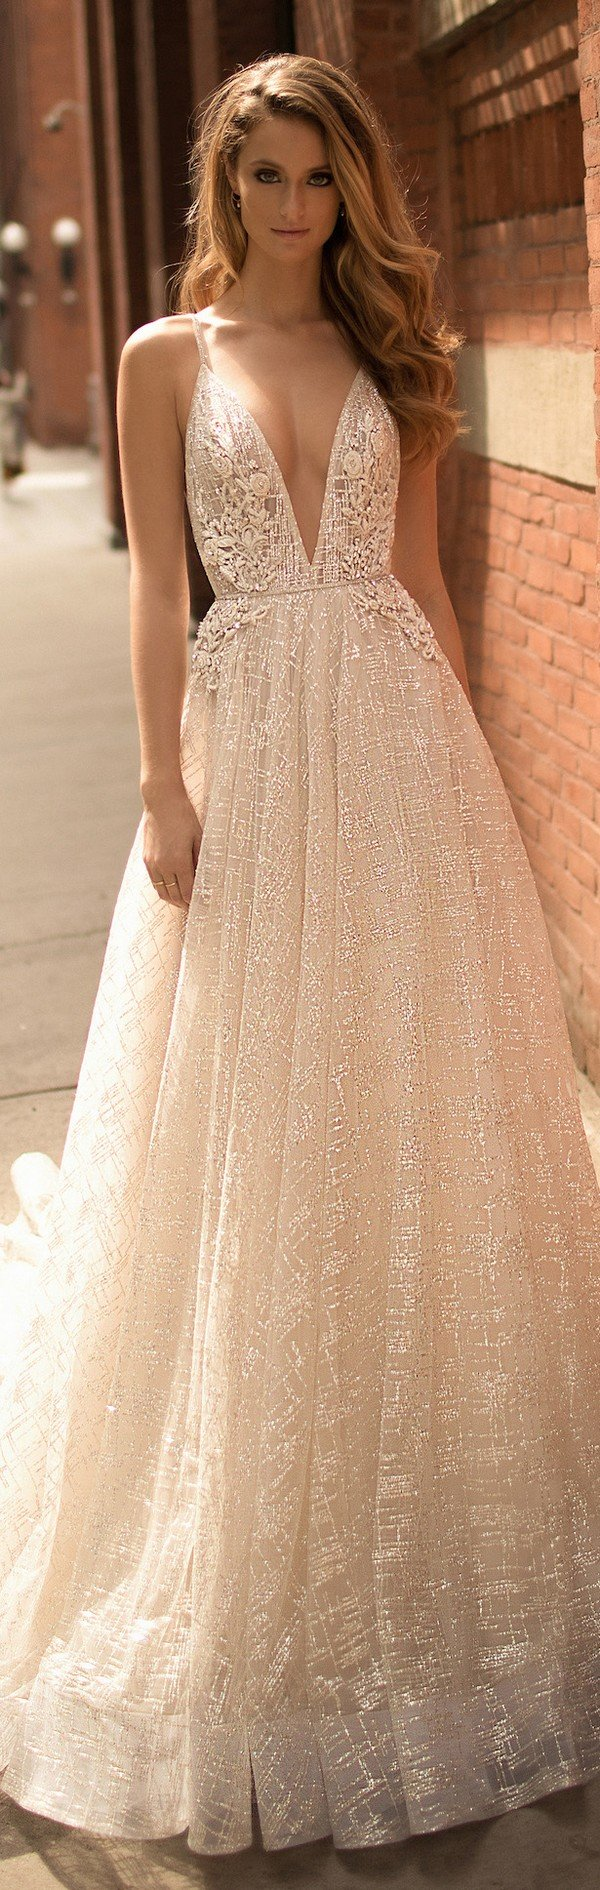 amazing deep v neck vintage a line wedding dress from Berta